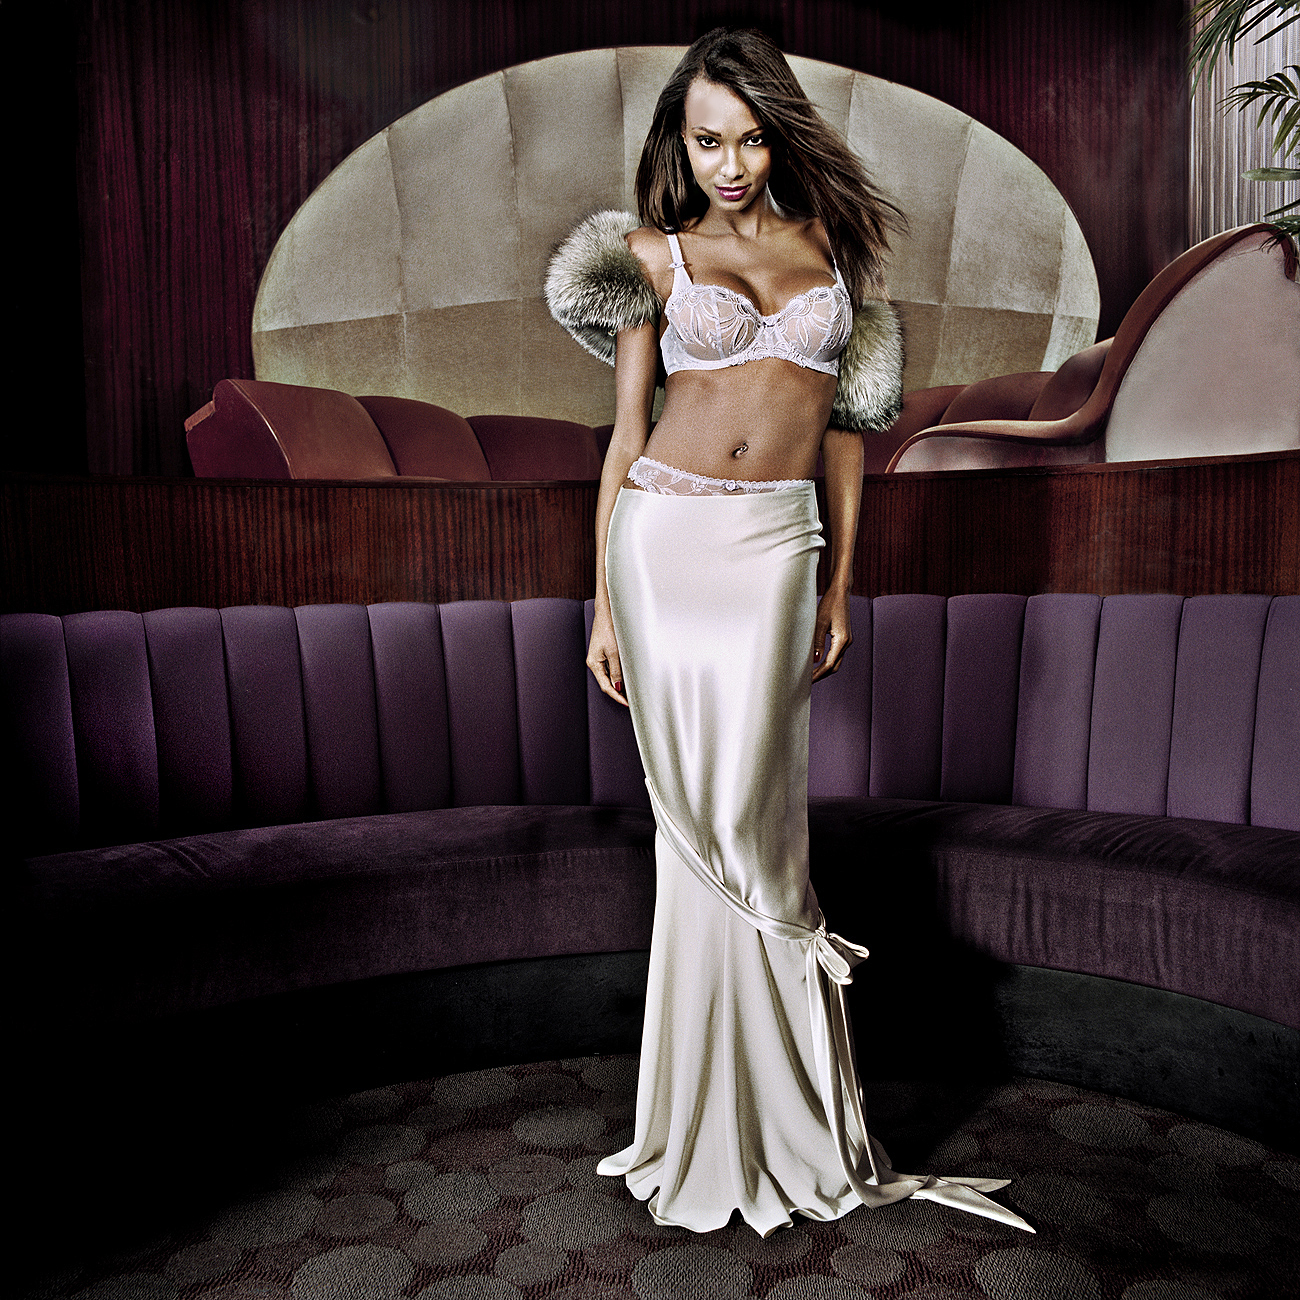 Tony_Ward_photography_neiman_marcus_picture_new_york_Penthouse_club_lingerie_picture